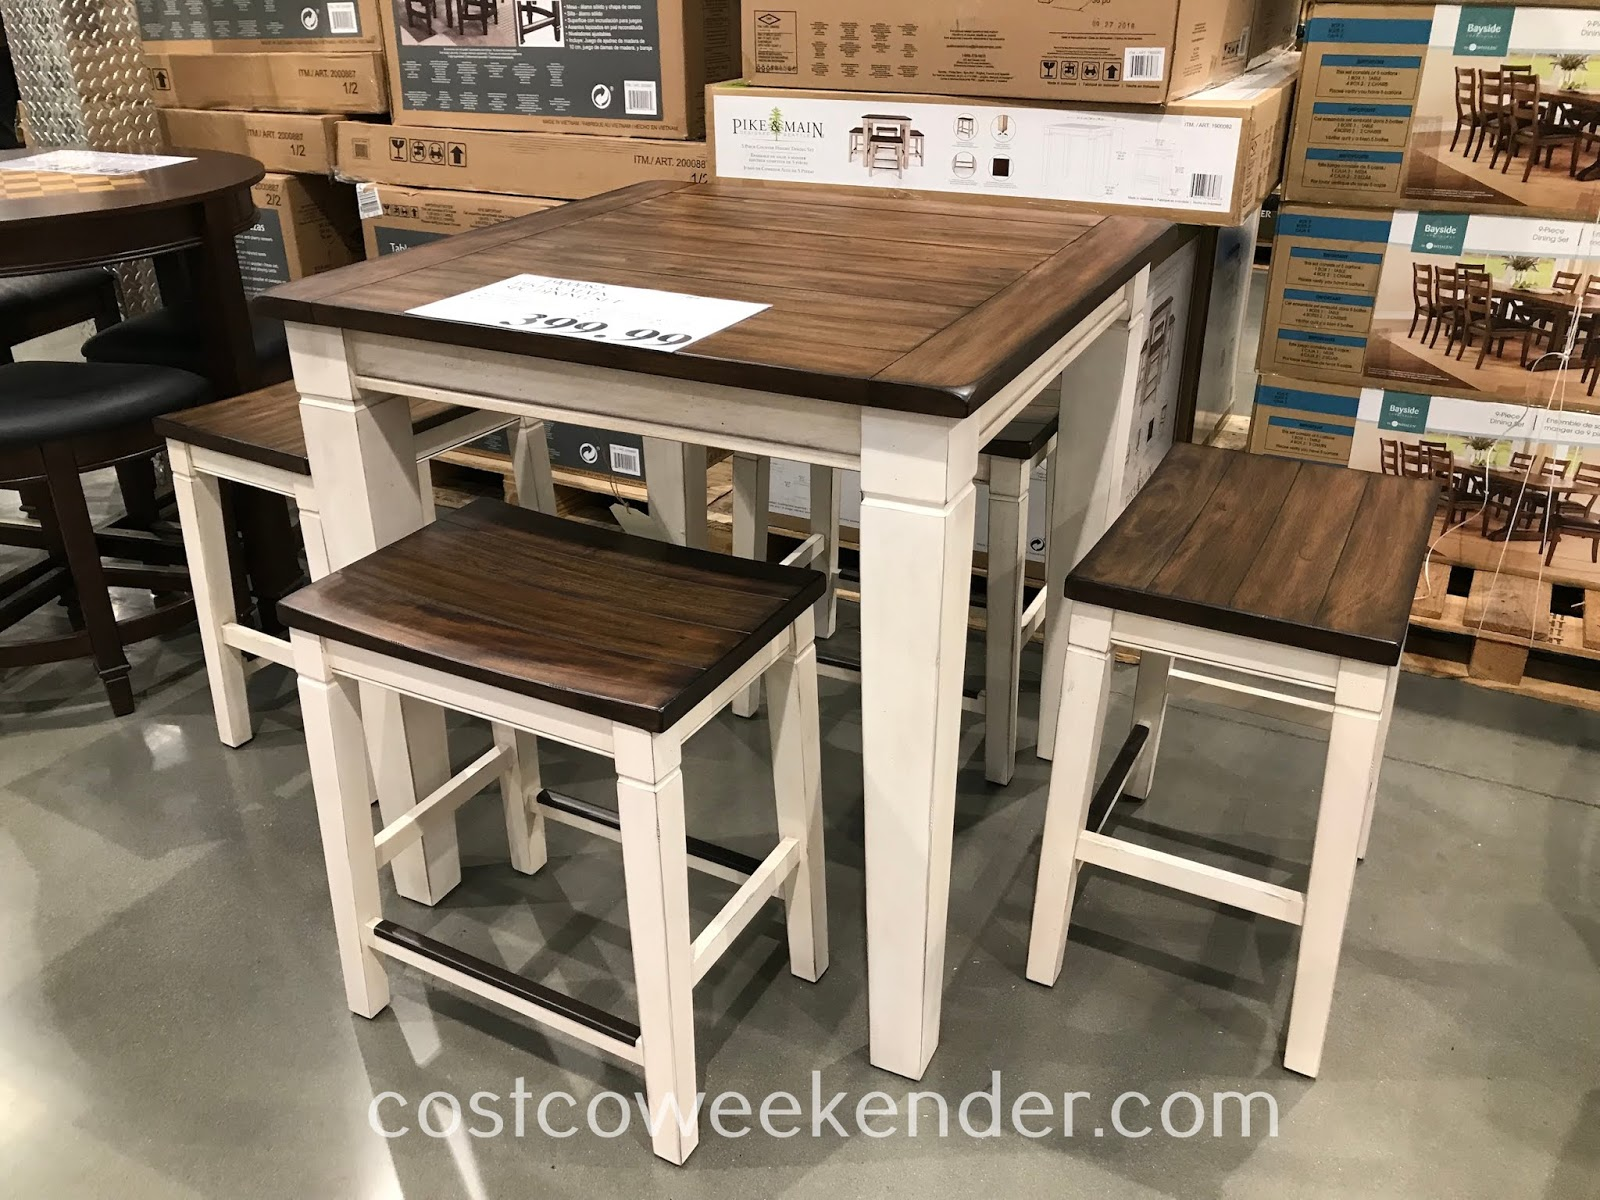 Have breakfast with the family on the Pike & Main 5-piece Counter Height Dining Set